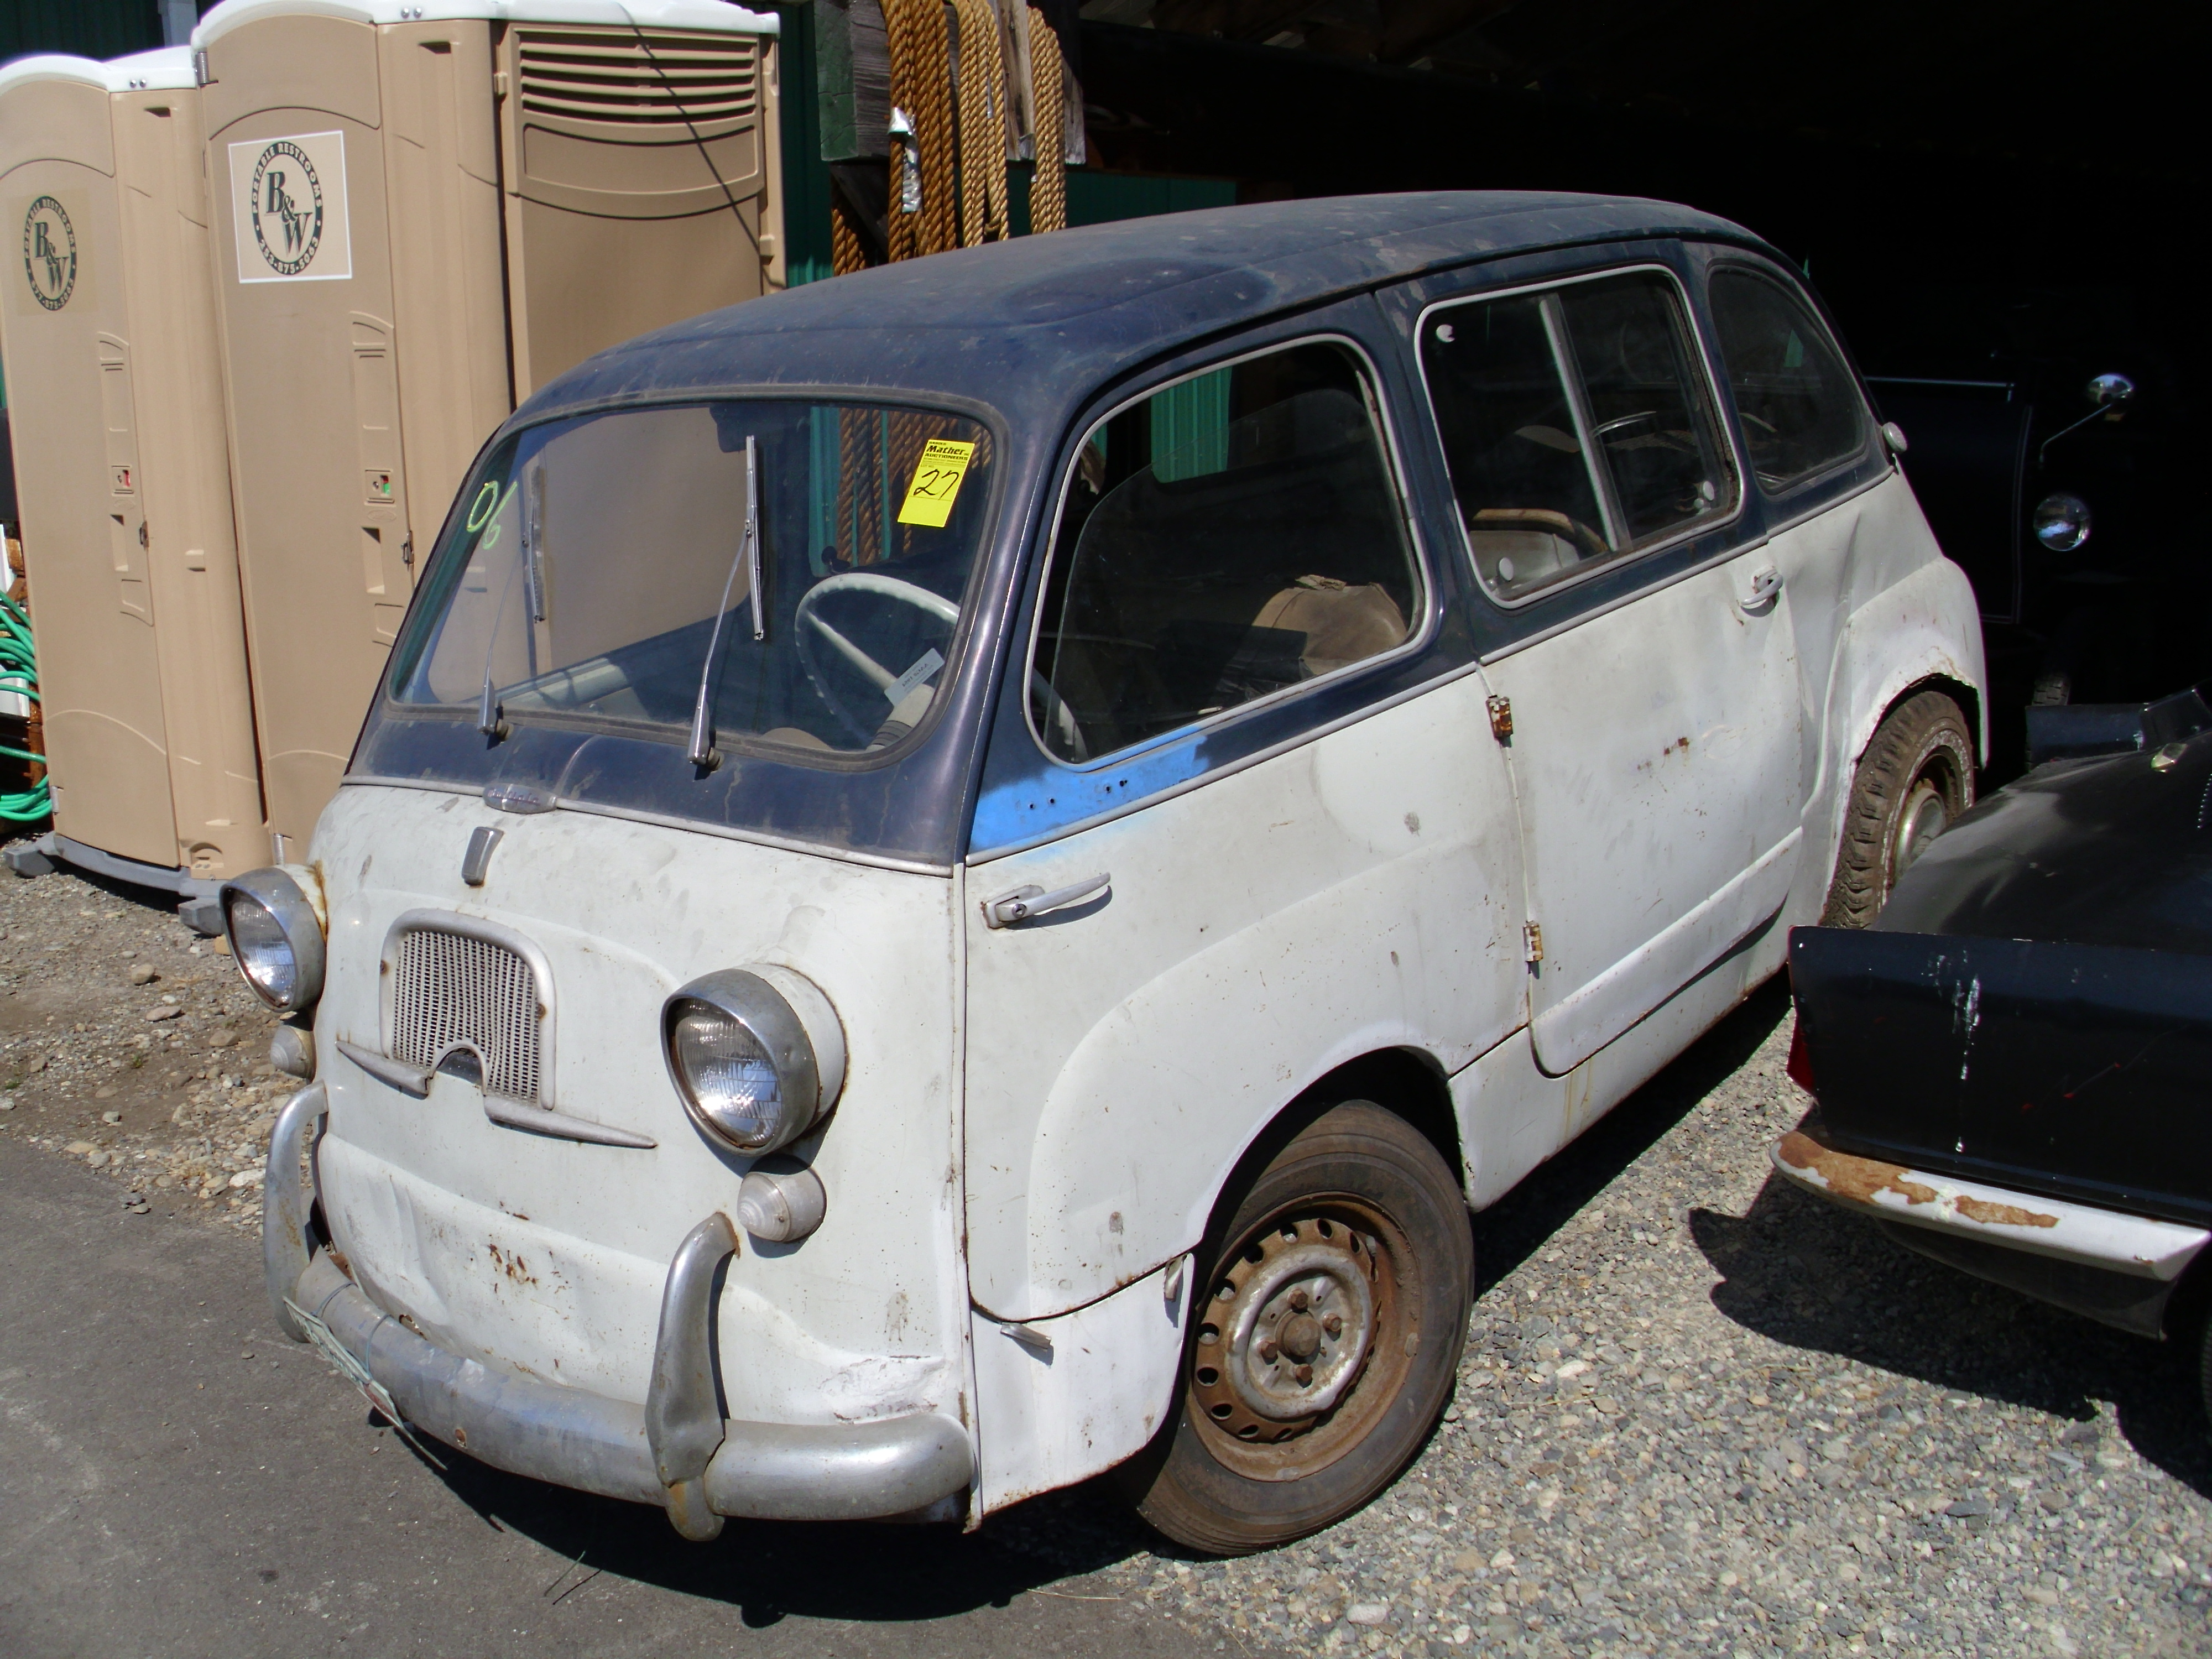 fiat dimensions specifications details technical data ci mechanical engine and multipla dv